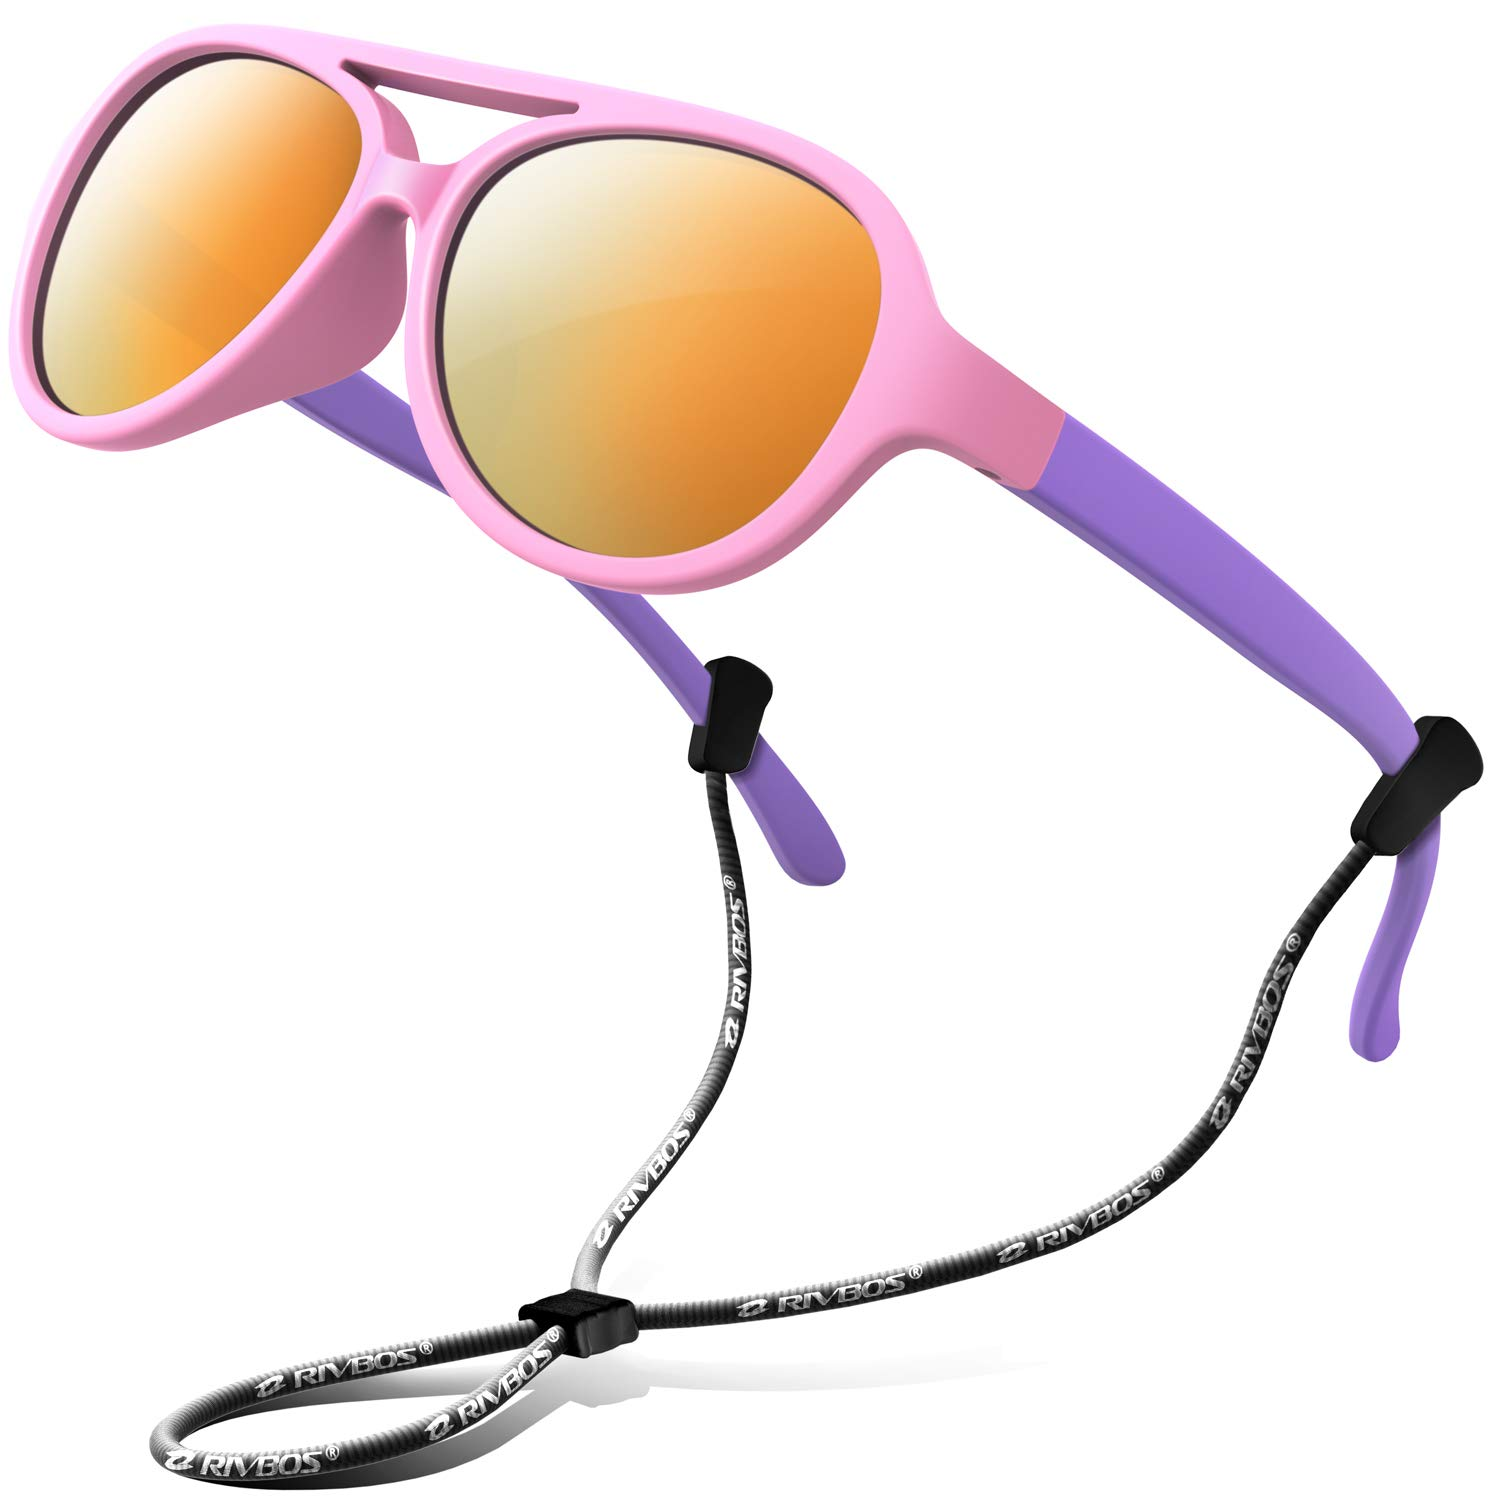 RIVBOS Rubber Kids Polarized Sunglasses Strap Glasses Shades Boys Girls Baby Children Age 3-10 RBK004 (Pink Coating Lens)